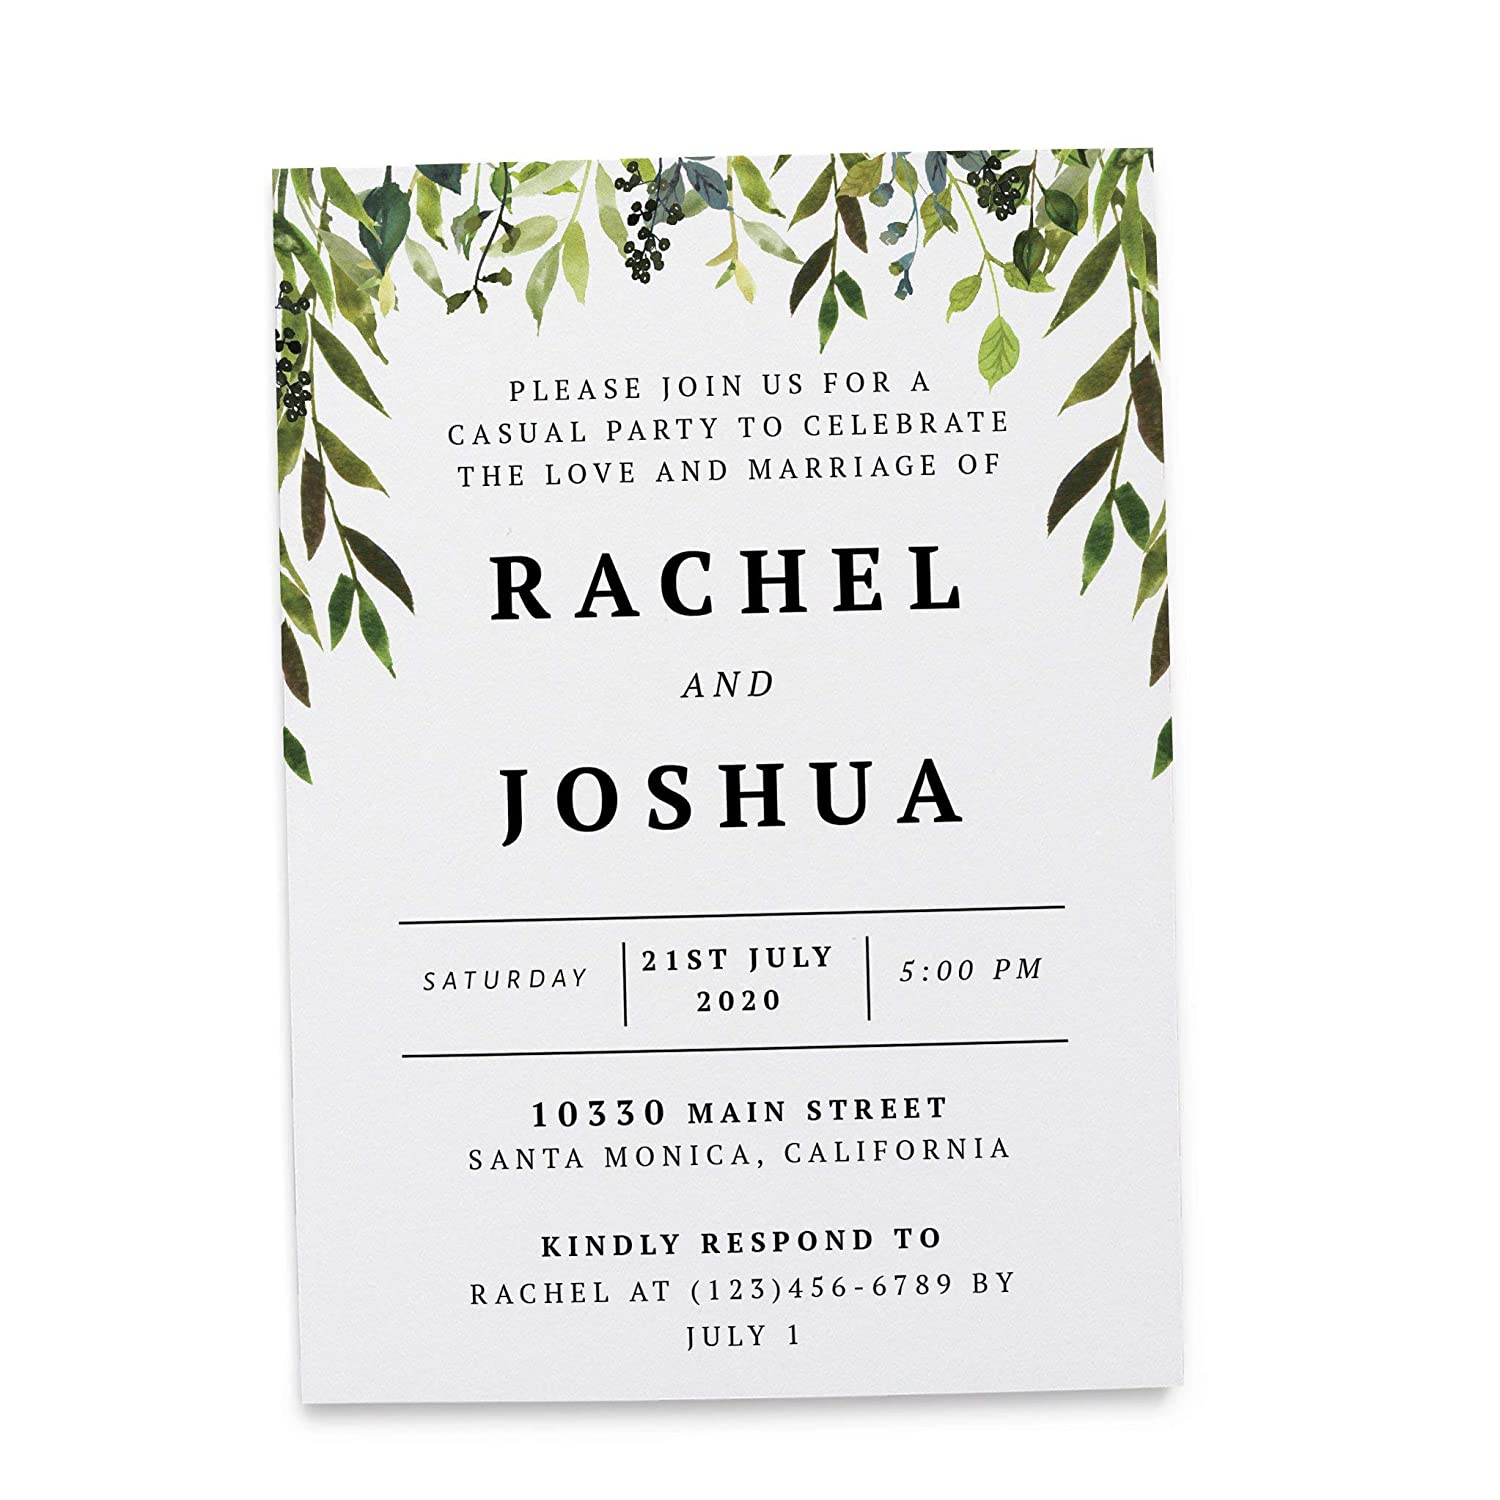 Wedding Reception Invitation Cards - Marriage Reception Invitation - We Eloped Party Invites - Custom, Personalized, Unique Card Stock - Green Leaves Themed ...